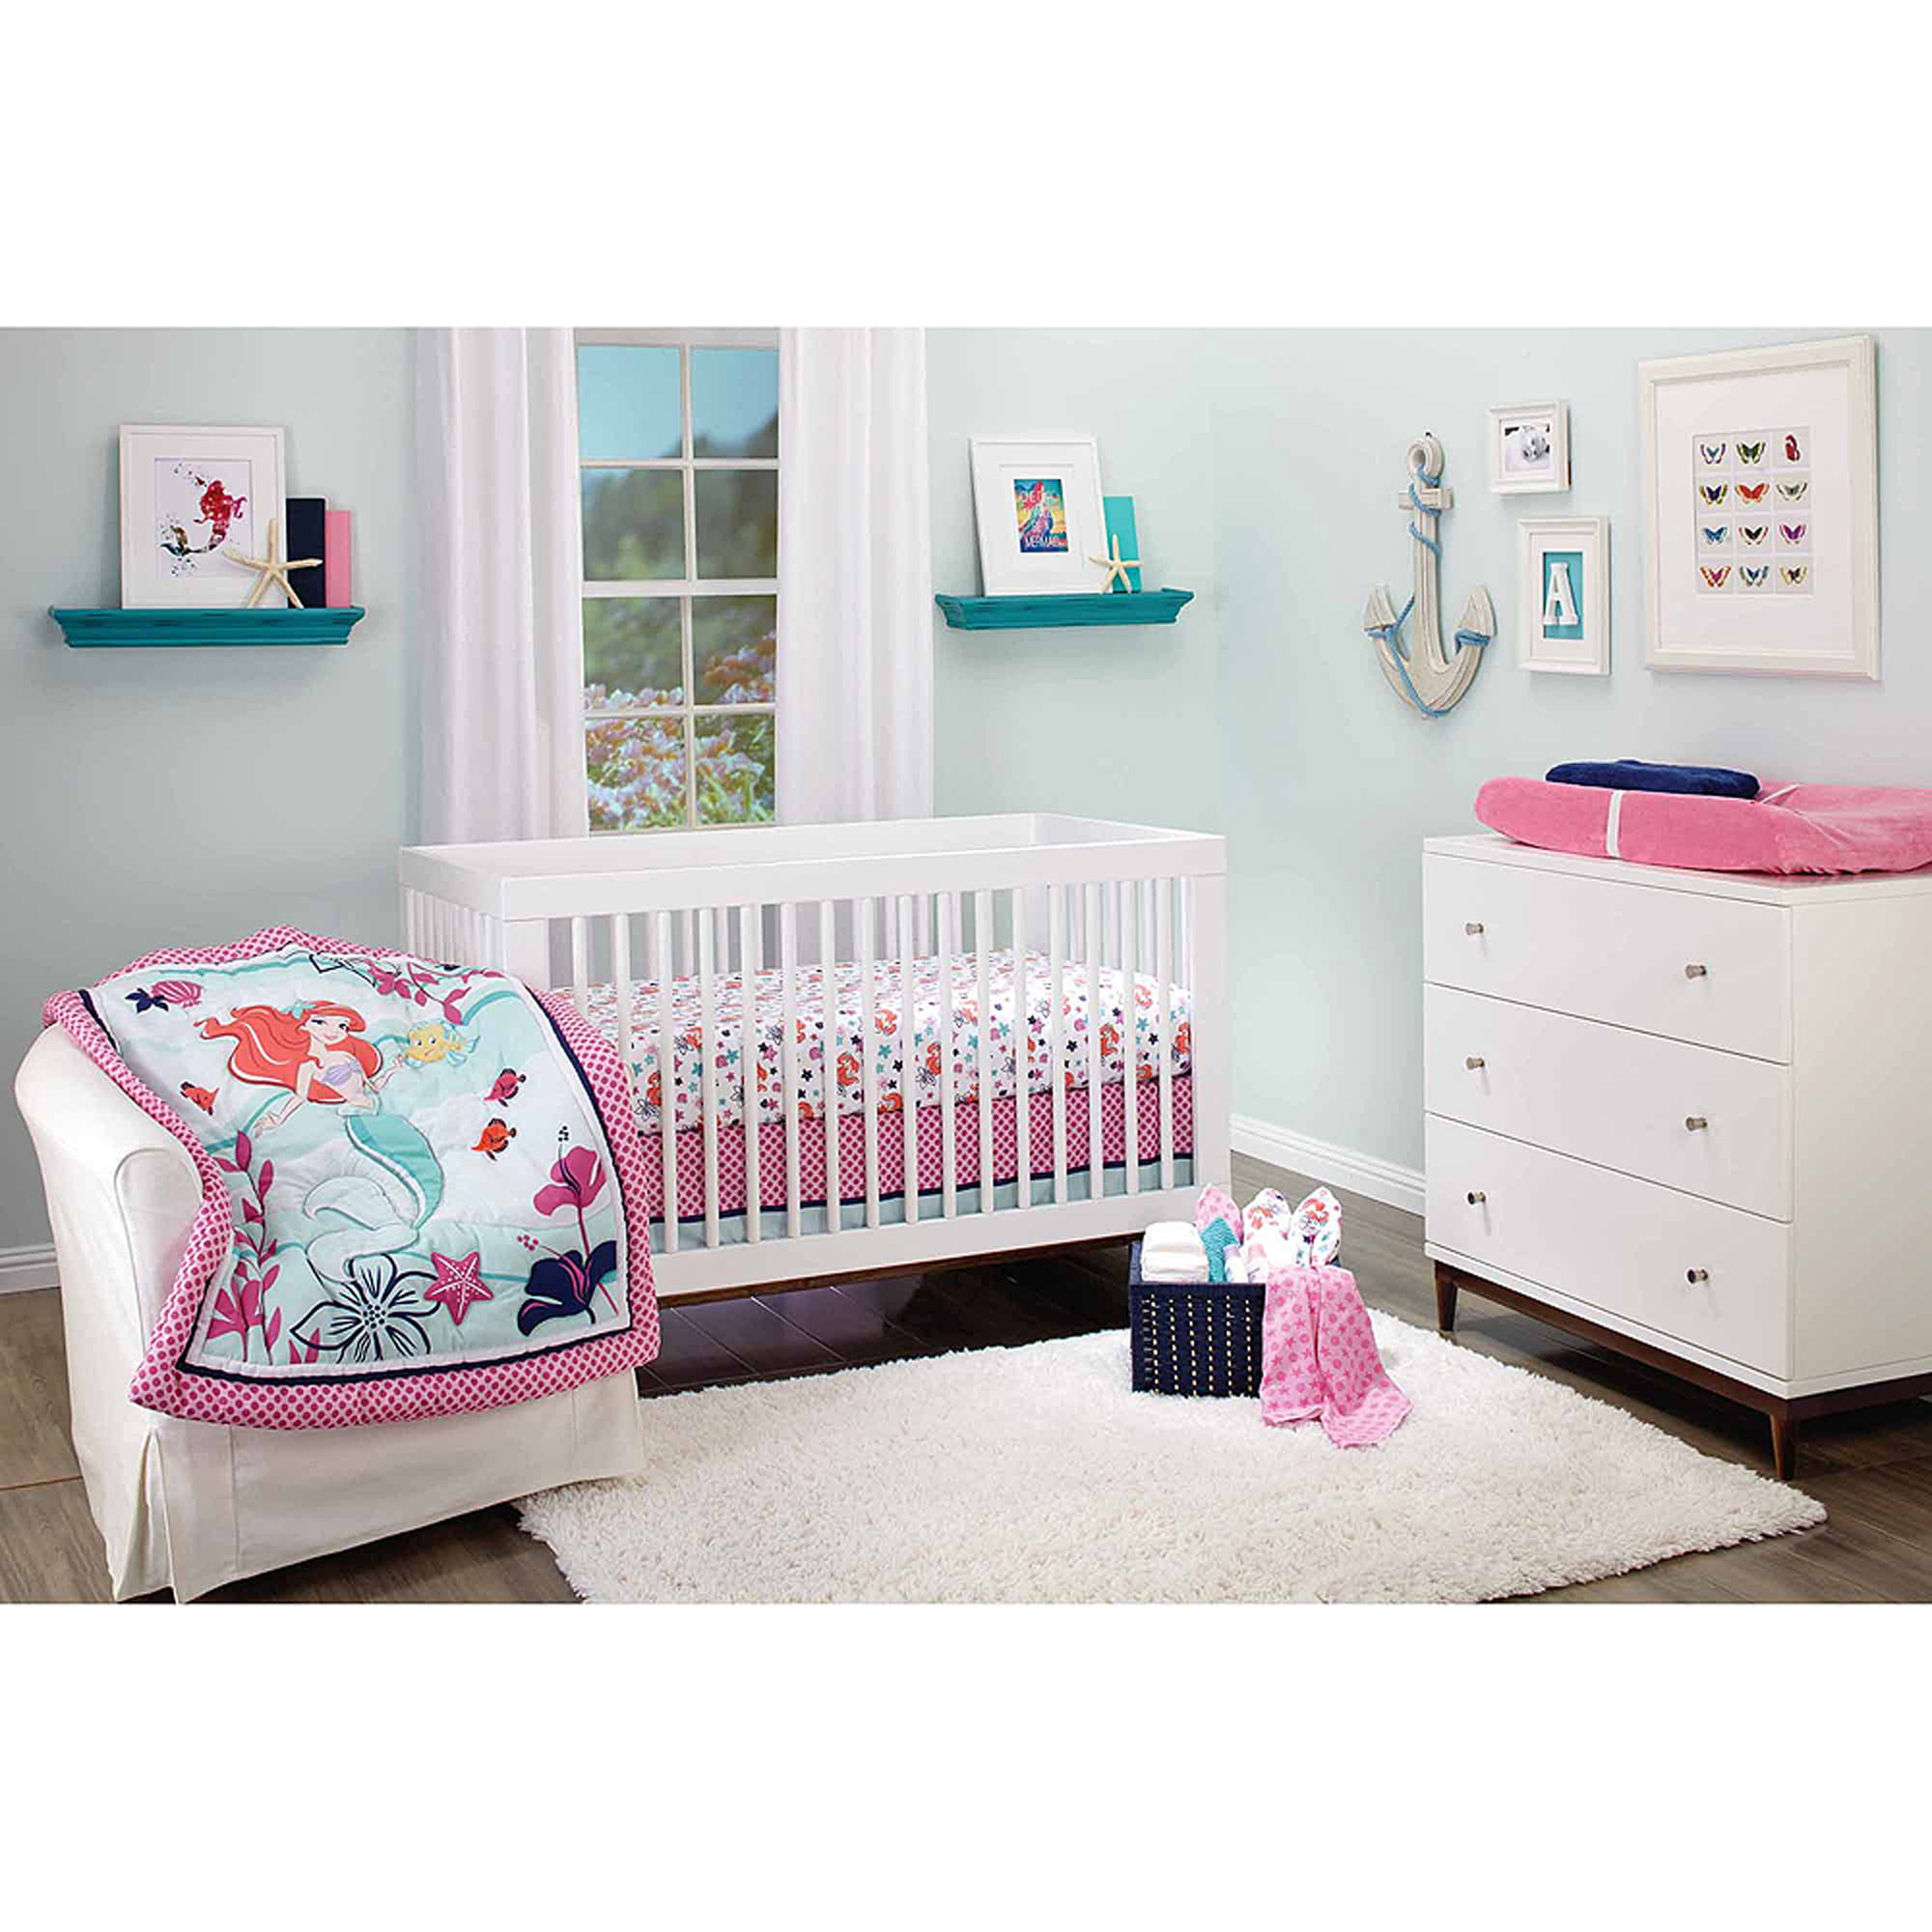 Disney Ariel Sea Treasures 3 Piece Crib